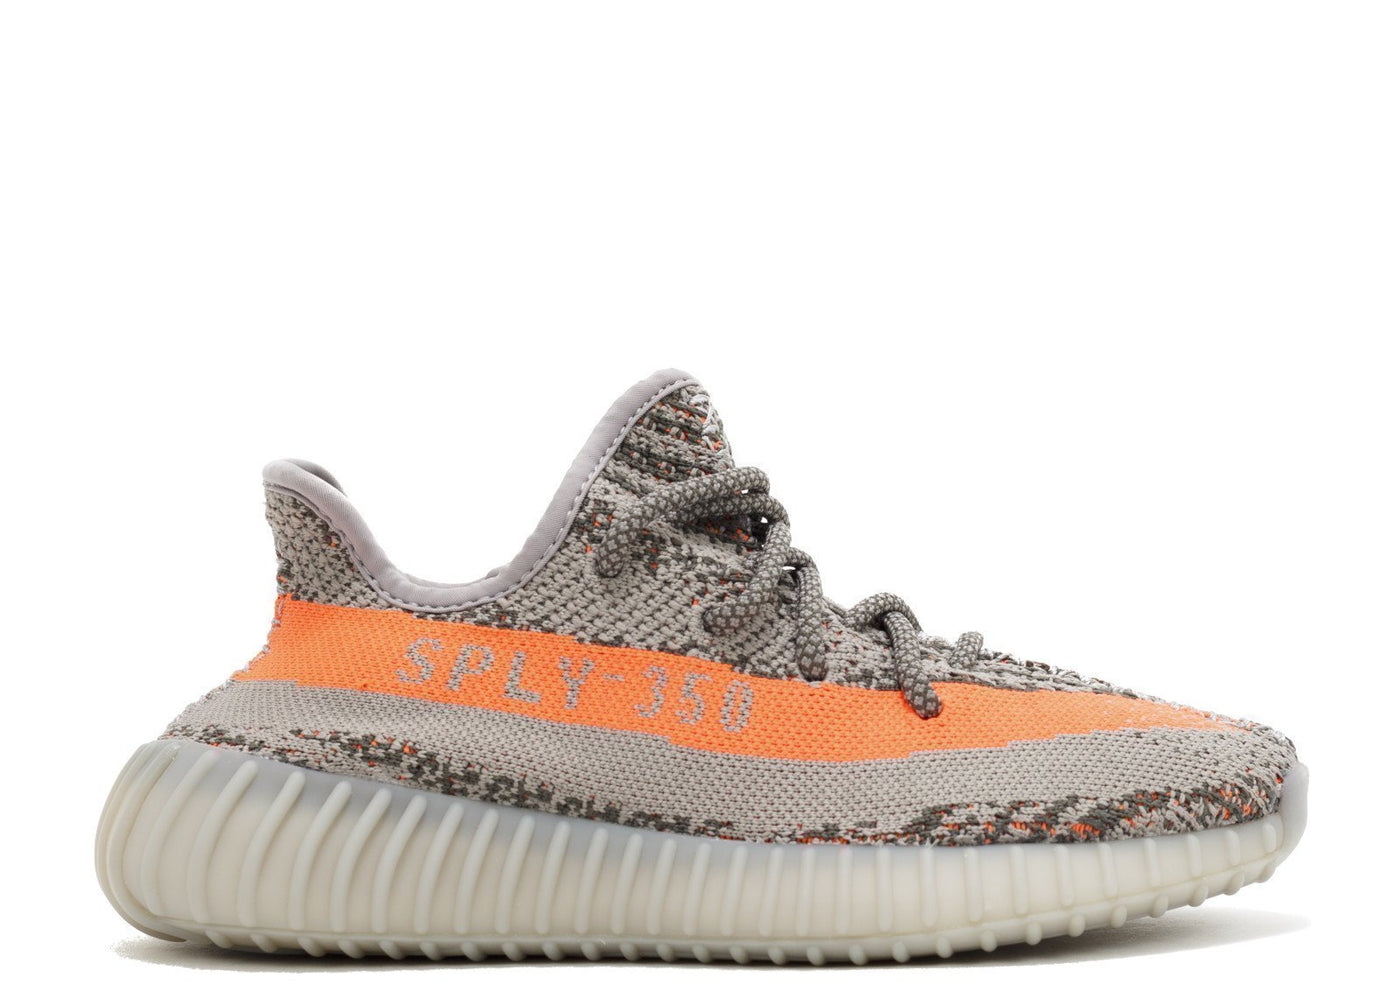 newest collection e93fd 73e65 Yeezy Boost 350 V2 Beluga Sneakers - BB1826